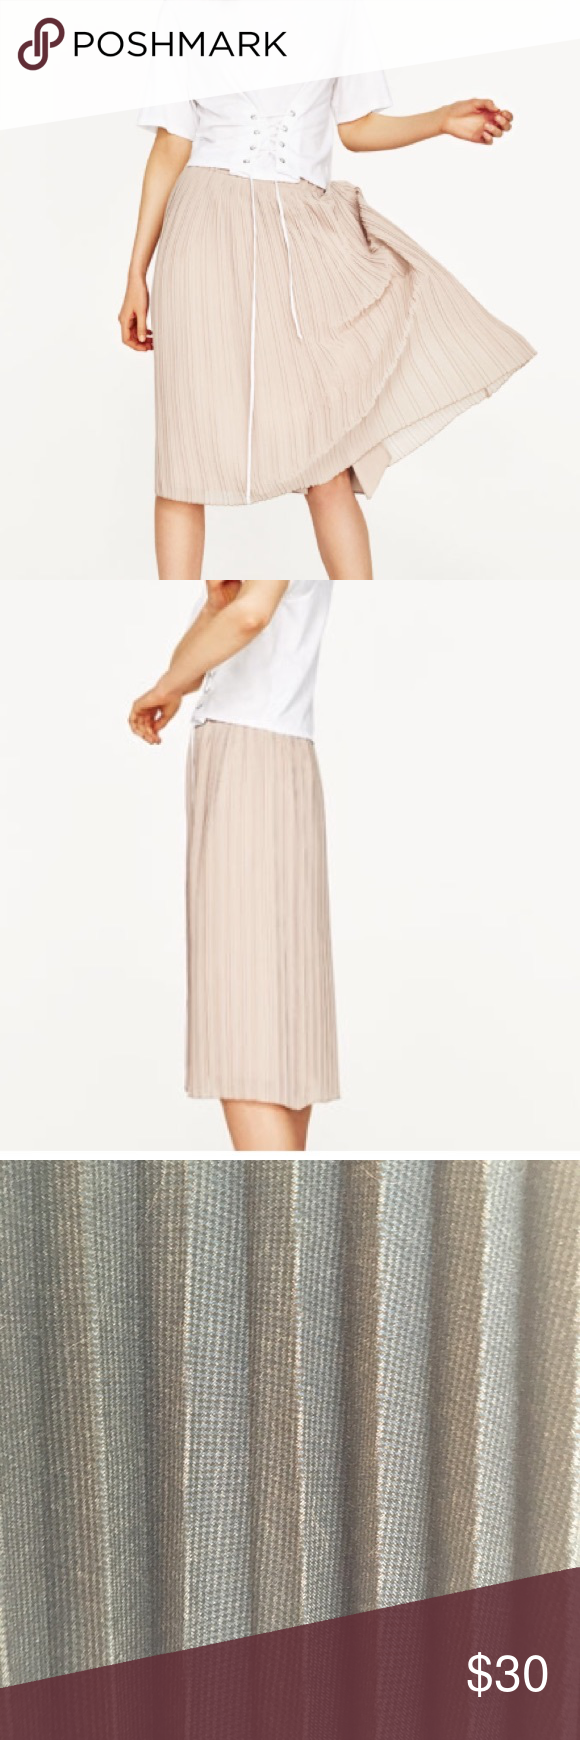 0495d3ed05 Zara knit knife pleat midi skirt in gold. Zara midi skirt with knife  pleats. Knit in size M. Not lined. Is somewhat sheer so a slip is  recommended.